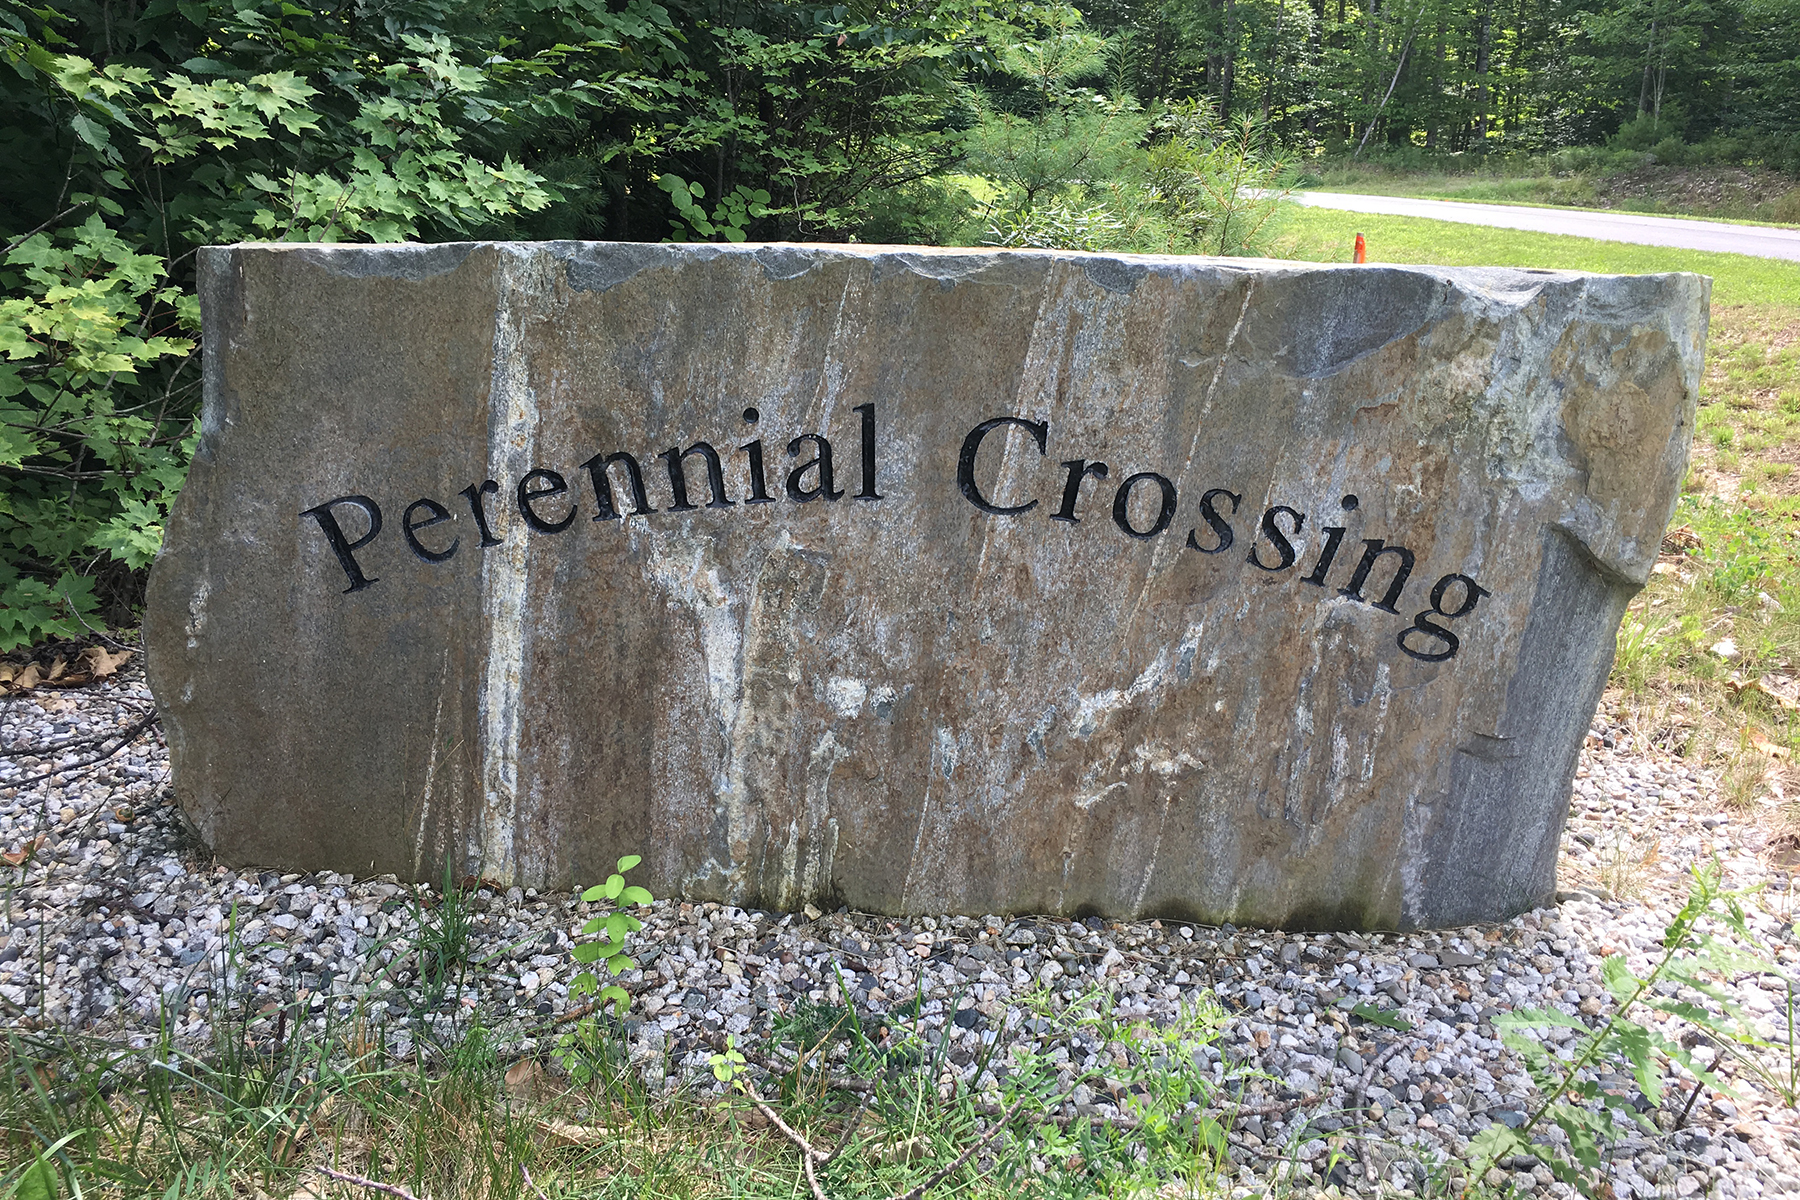 Land for Sale at TBD Perrenial Crossing North Yarmouth, Maine, 04097 United States